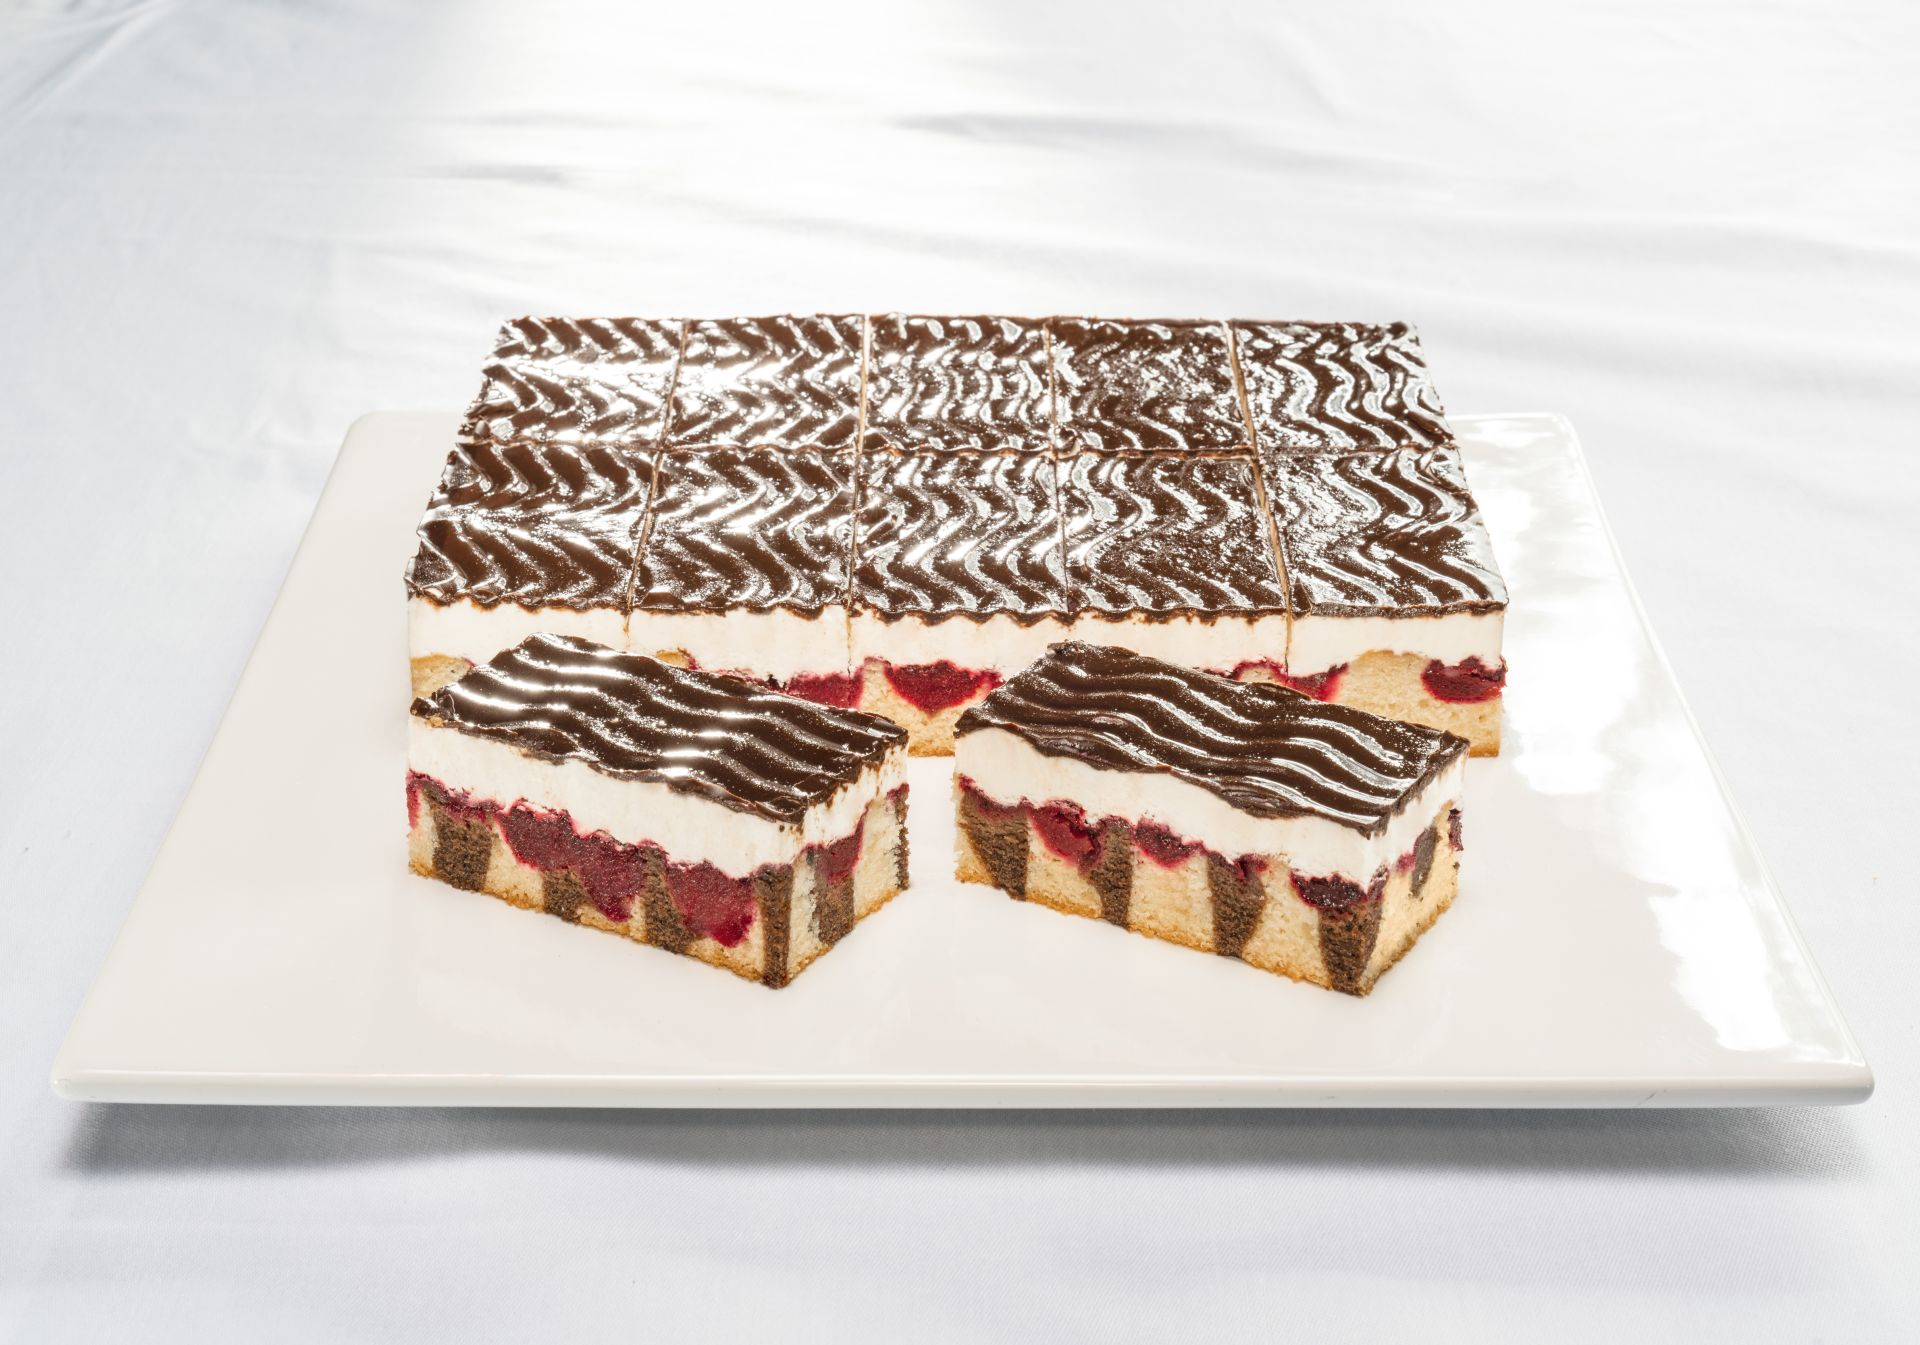 Premium Chocolate and Cherry Cream Slice 20 Portions